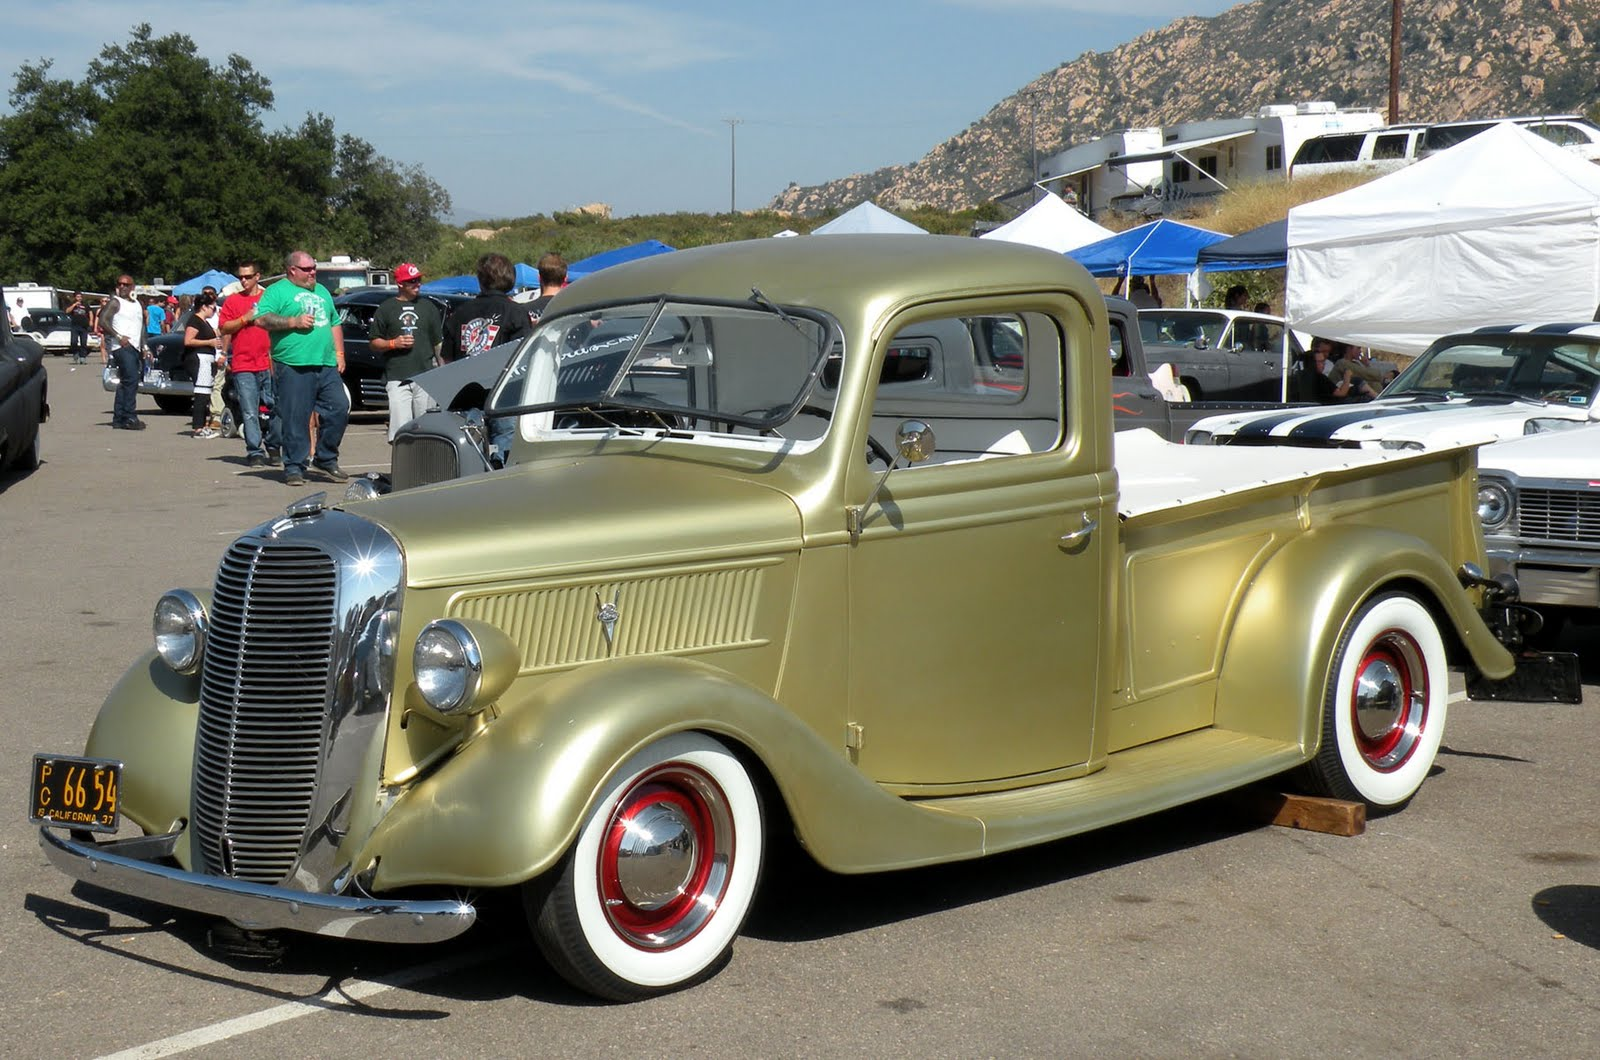 Car Club Inc: Carsangels: The Best Looking Hot Rods And Customs At